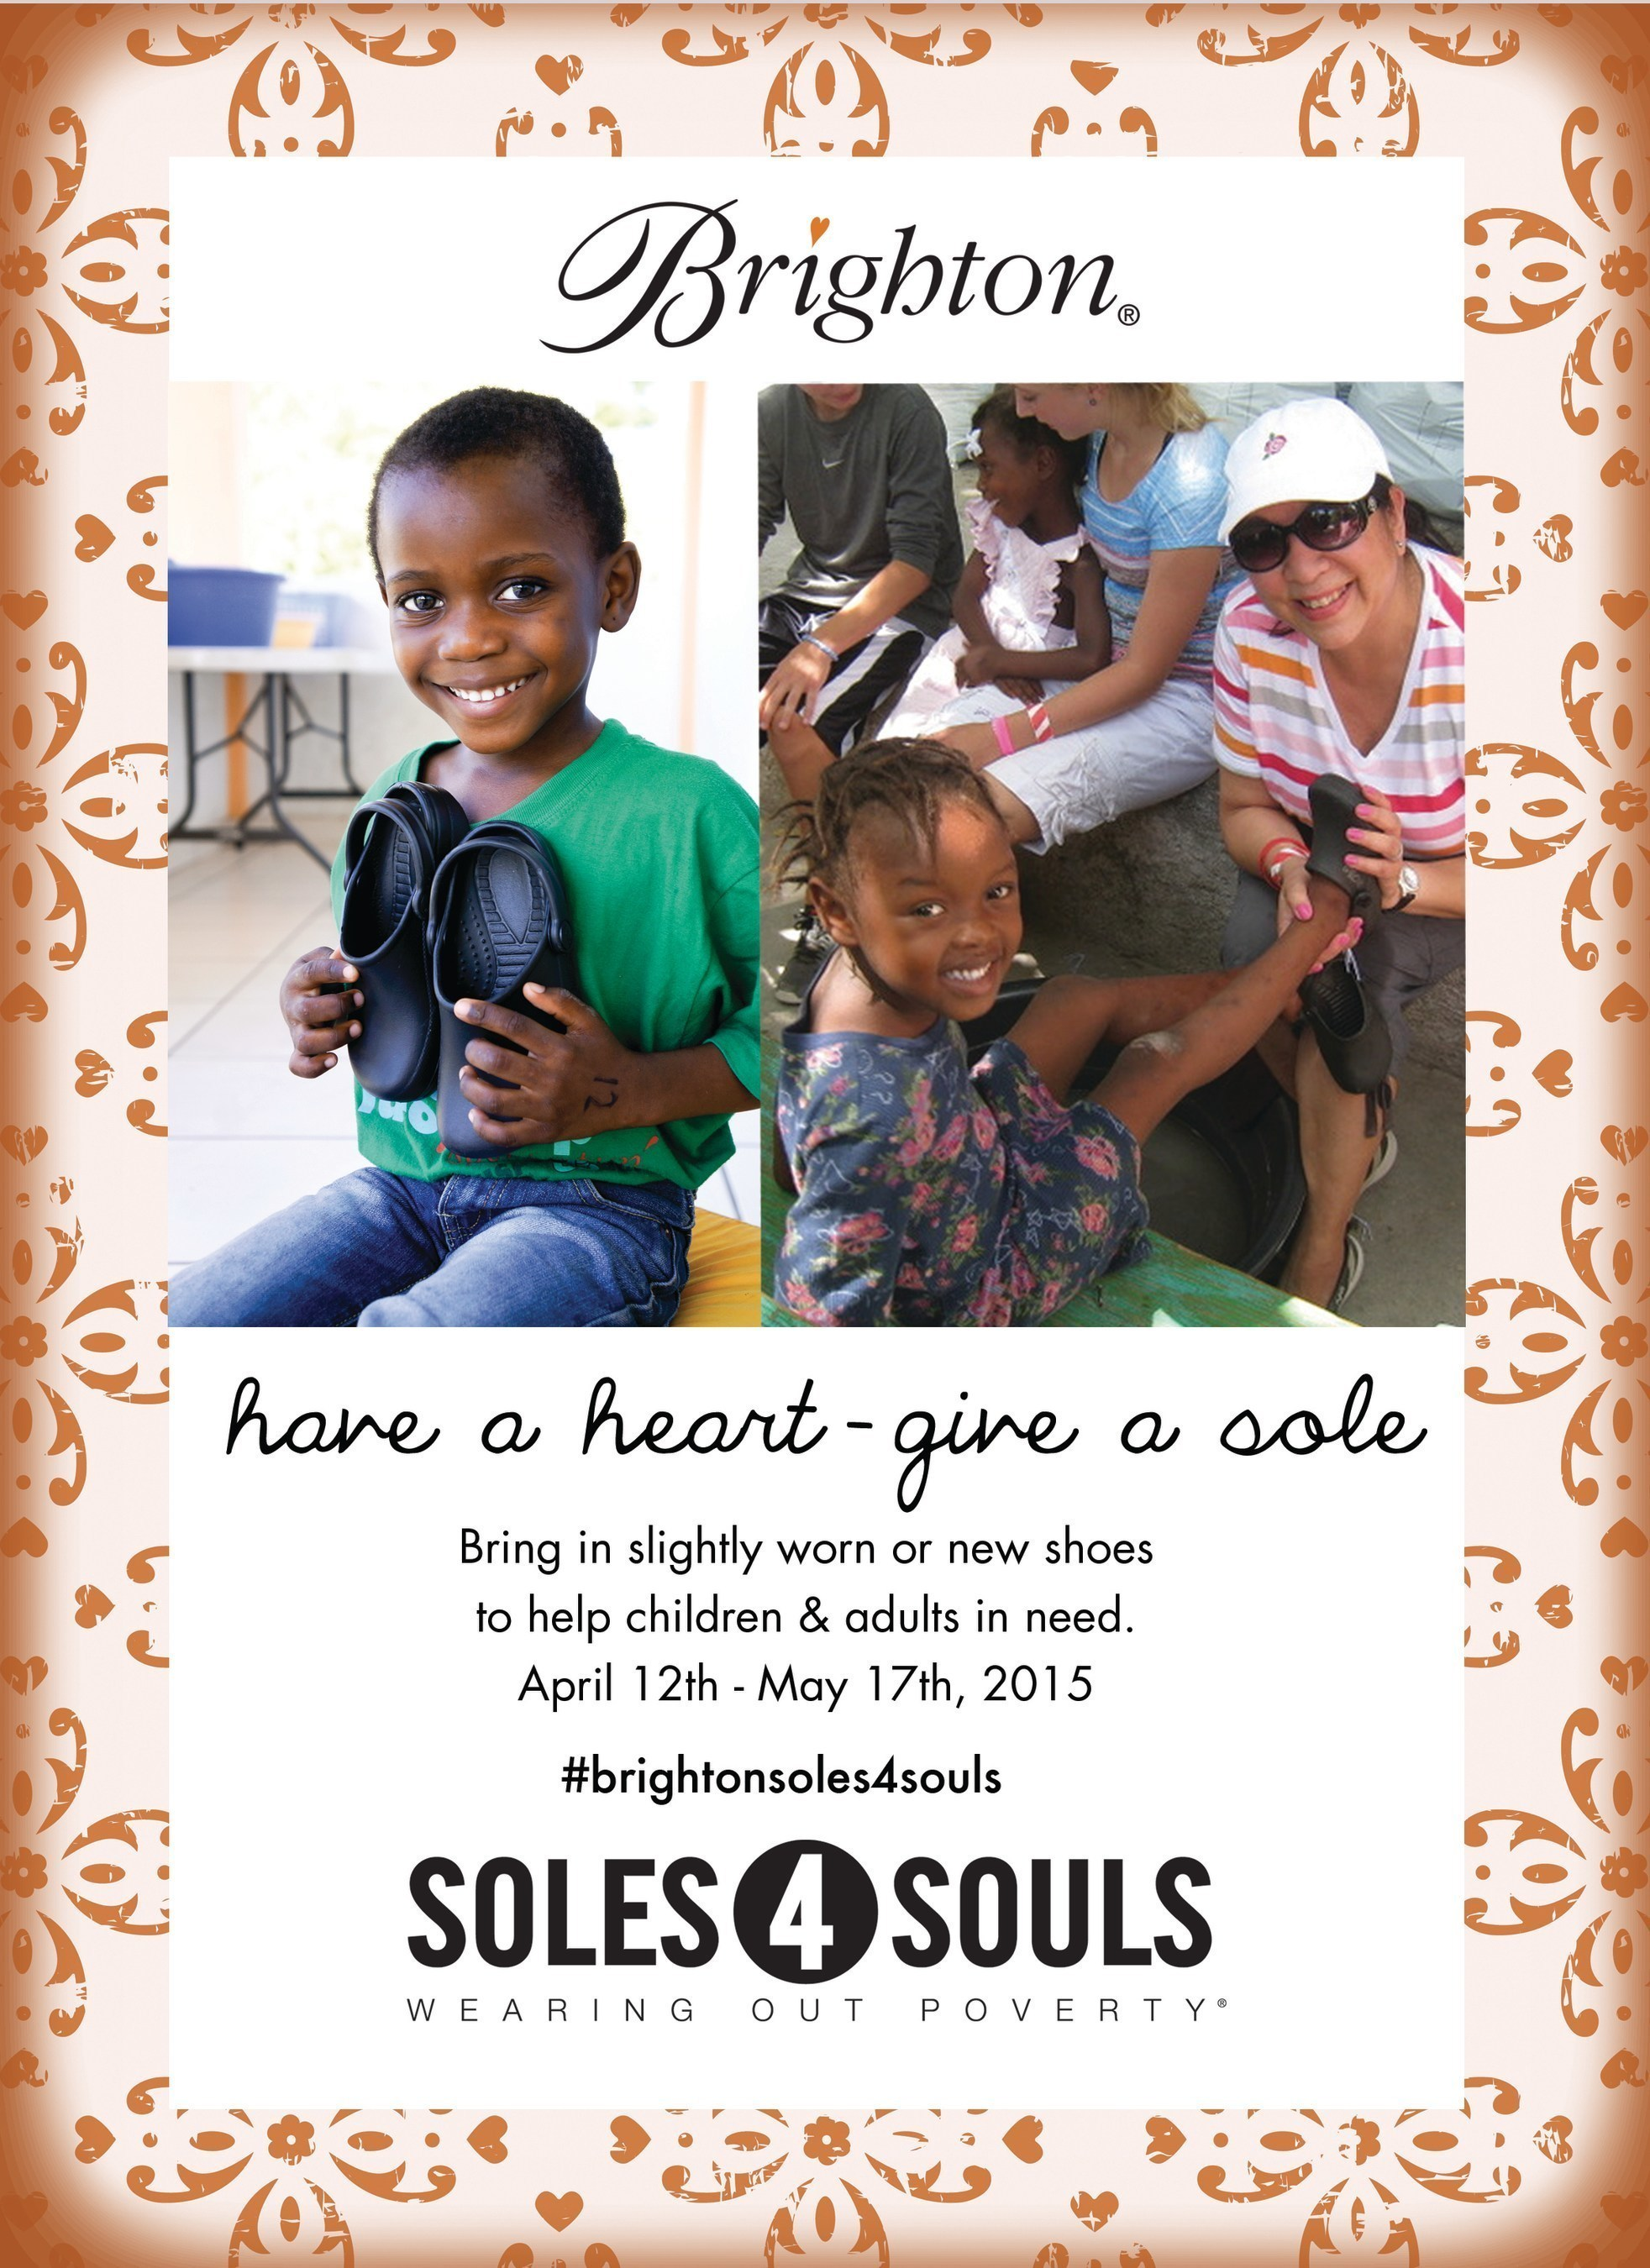 Help Brighton Collectibles Collect 100,000 pairs of shoes to fight global poverty